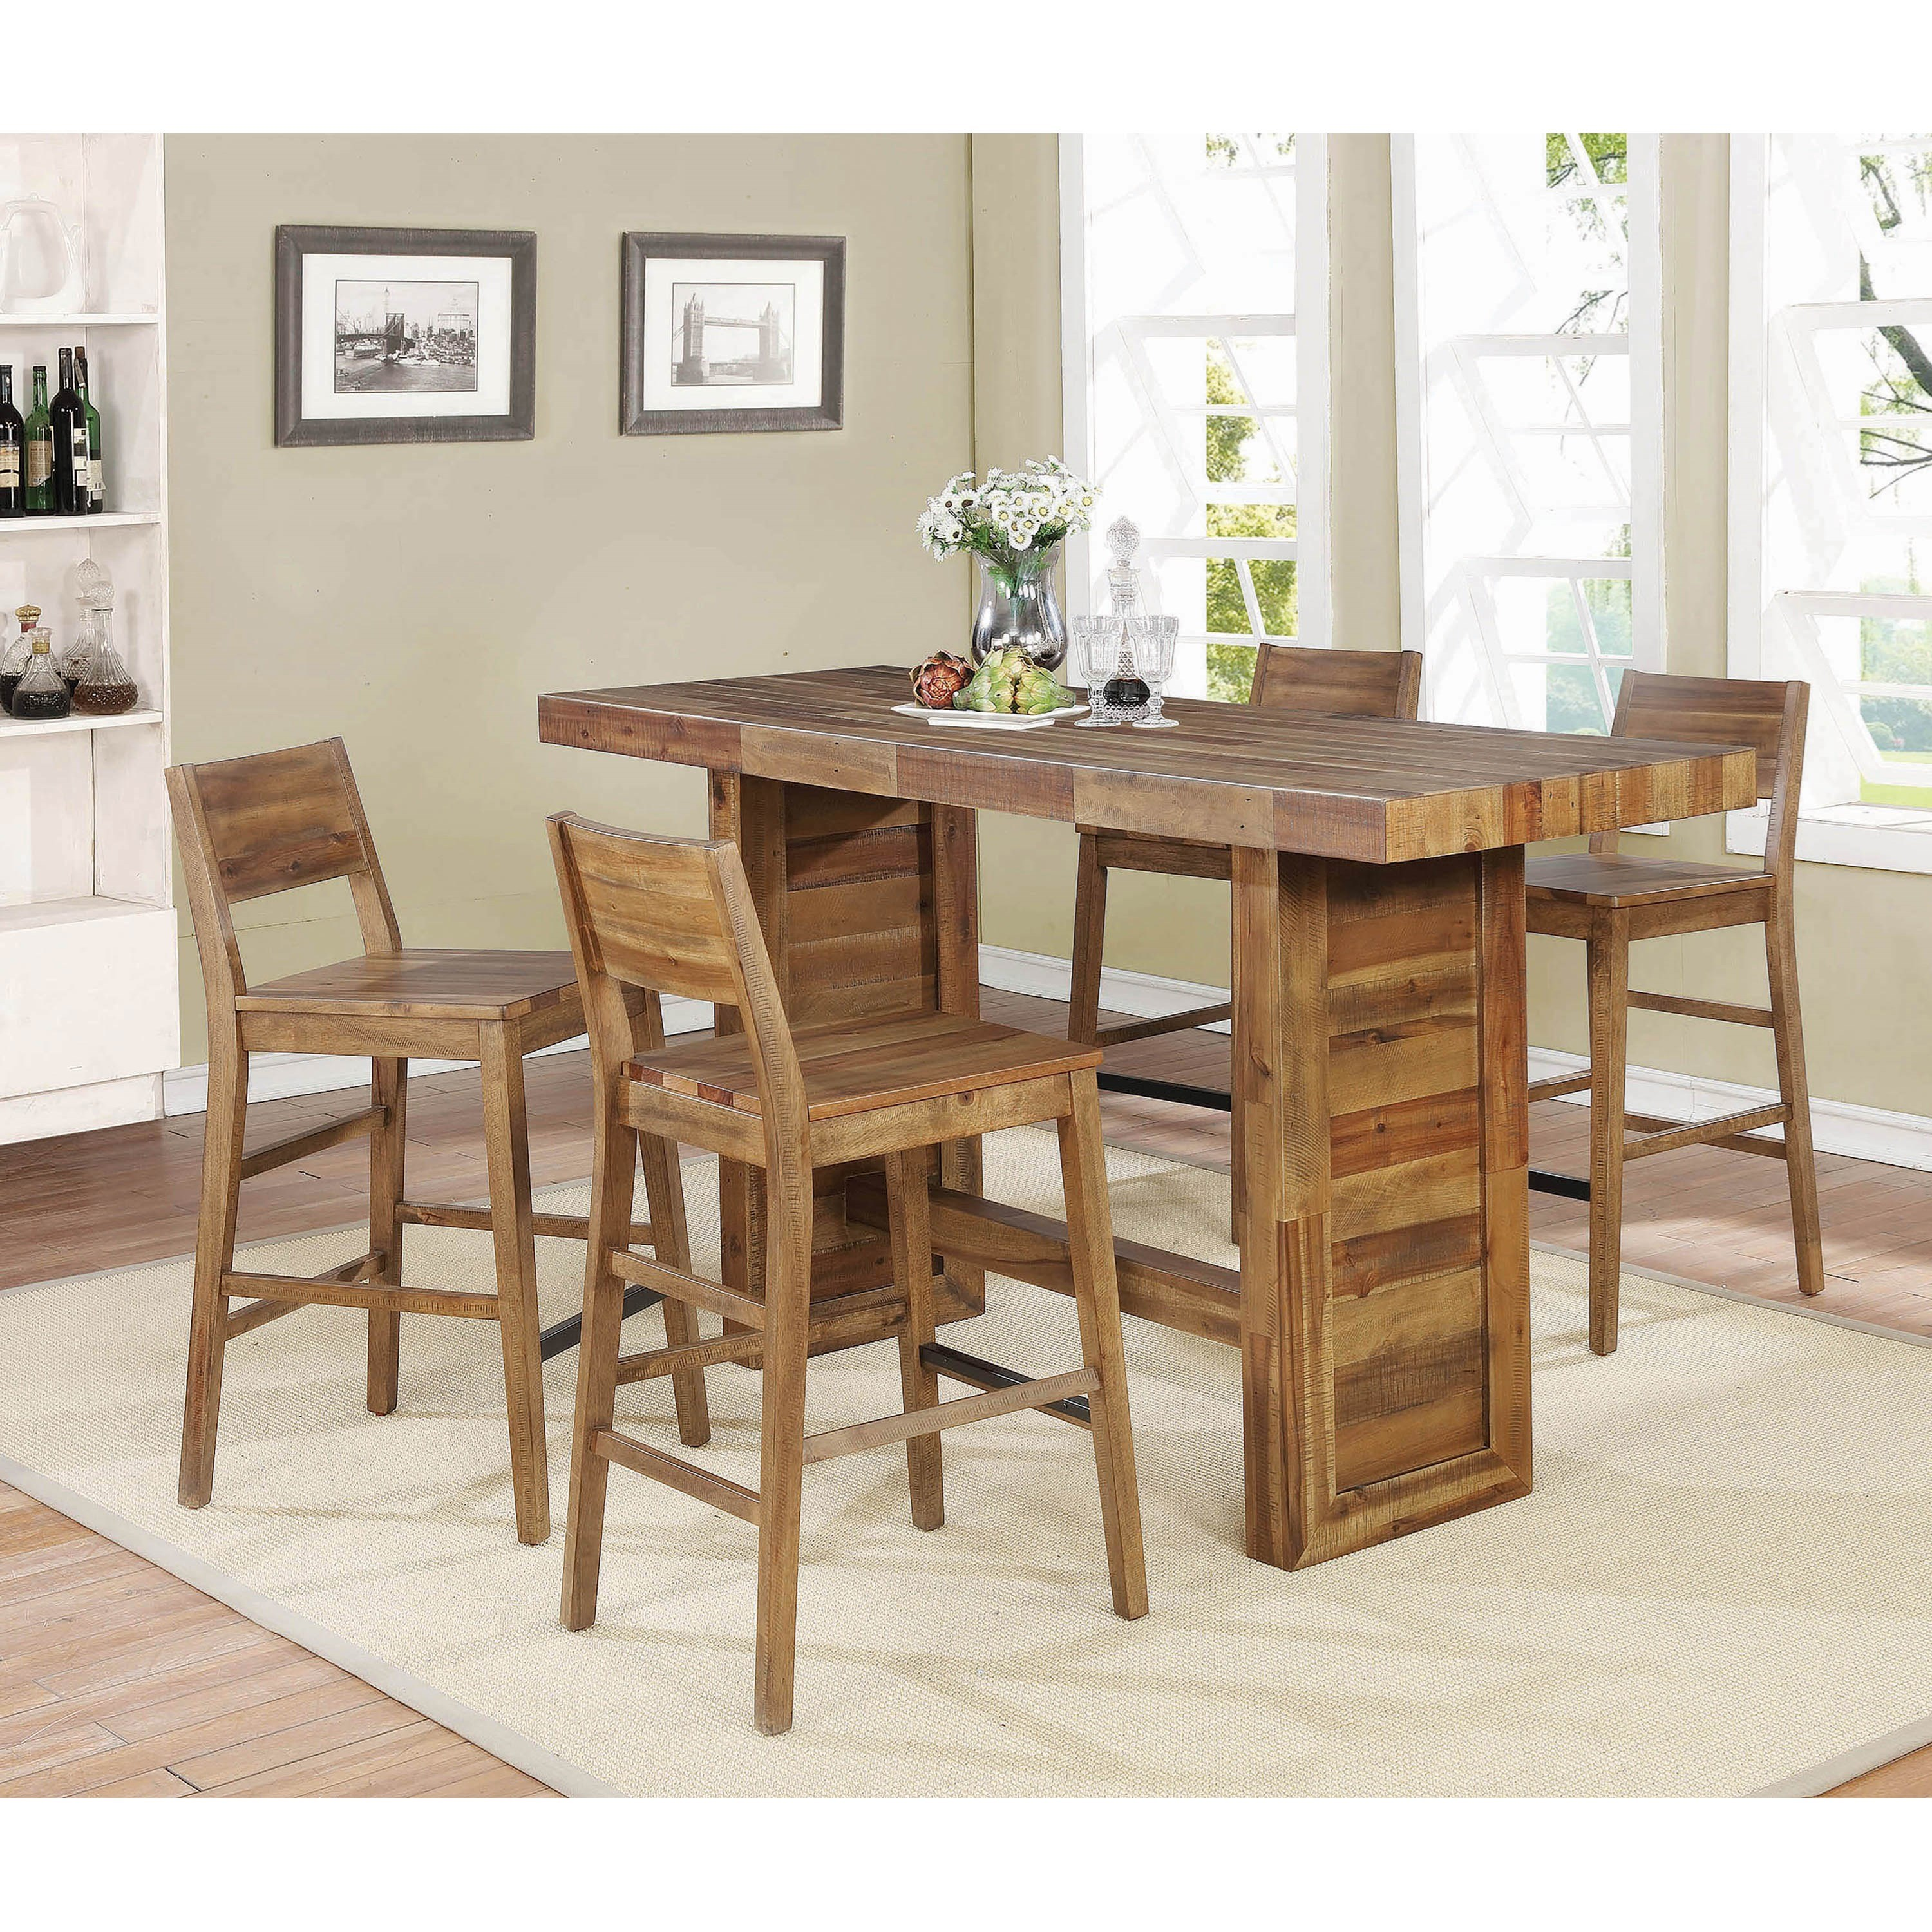 5 Piece Bar Table and Stool Set